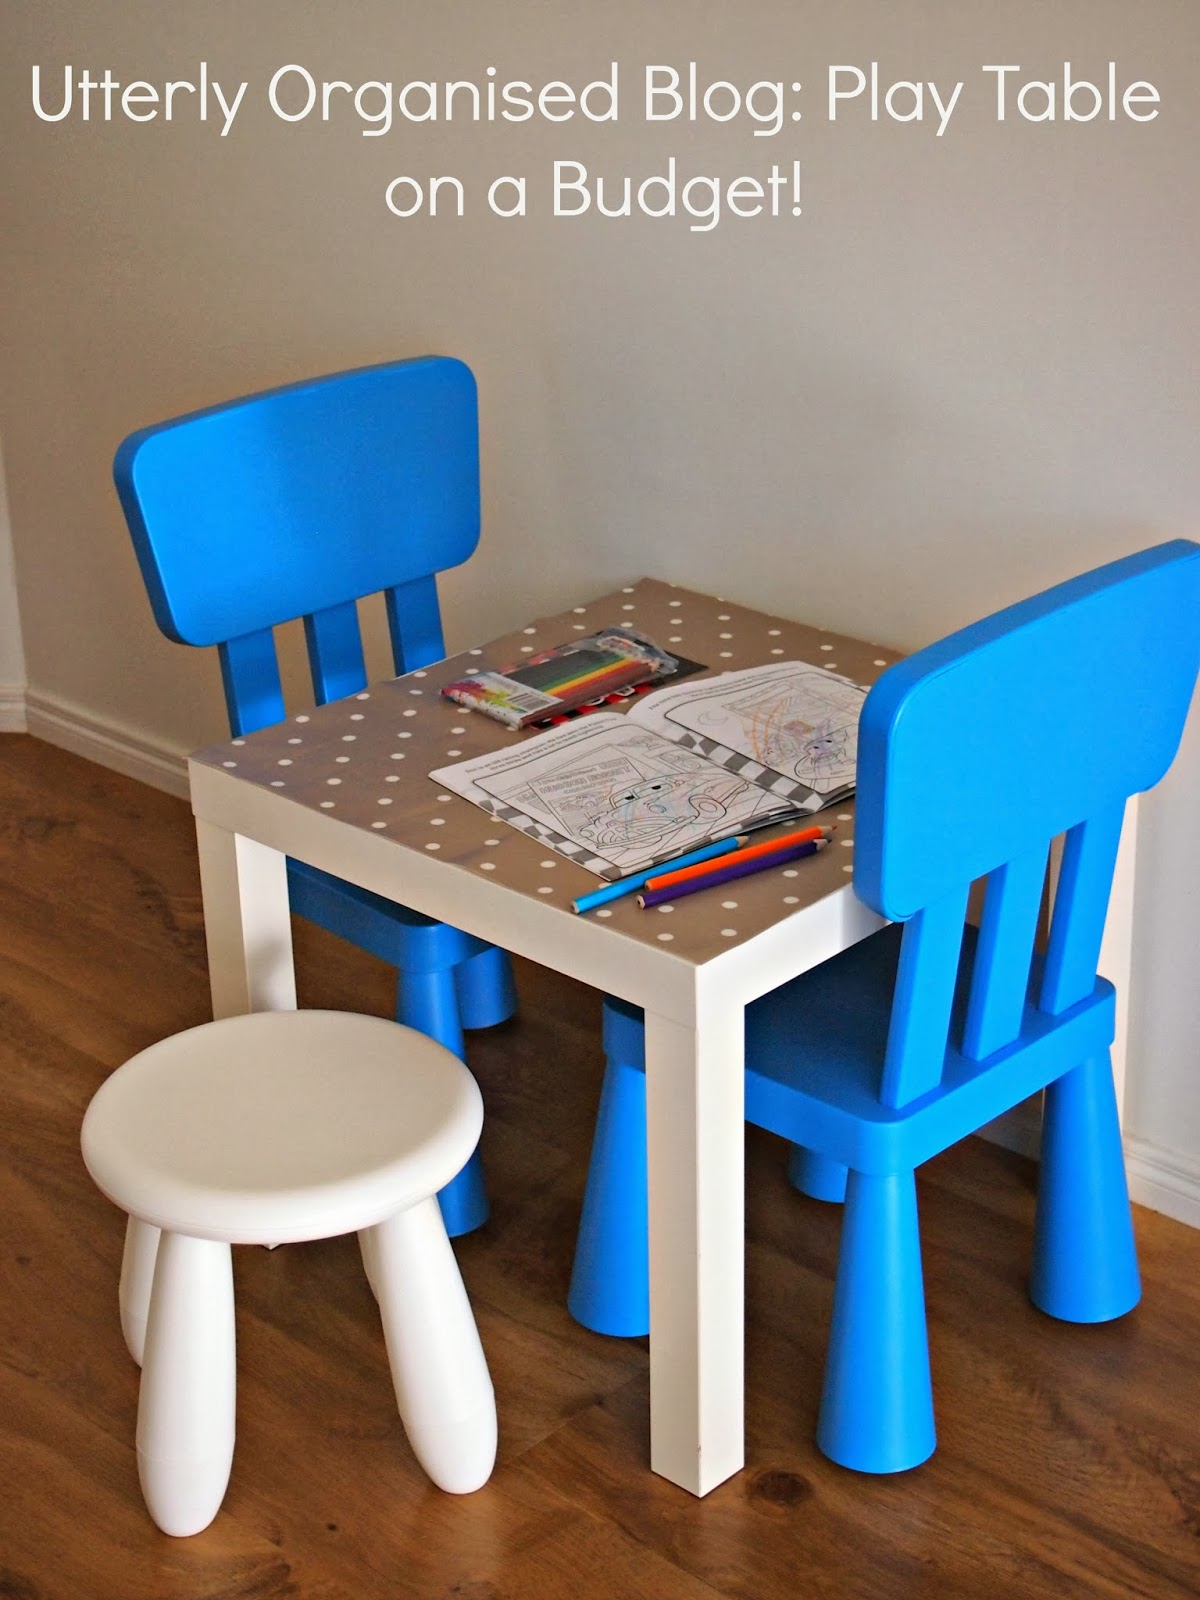 a children 39 s play table on a budget utterly organised. Black Bedroom Furniture Sets. Home Design Ideas